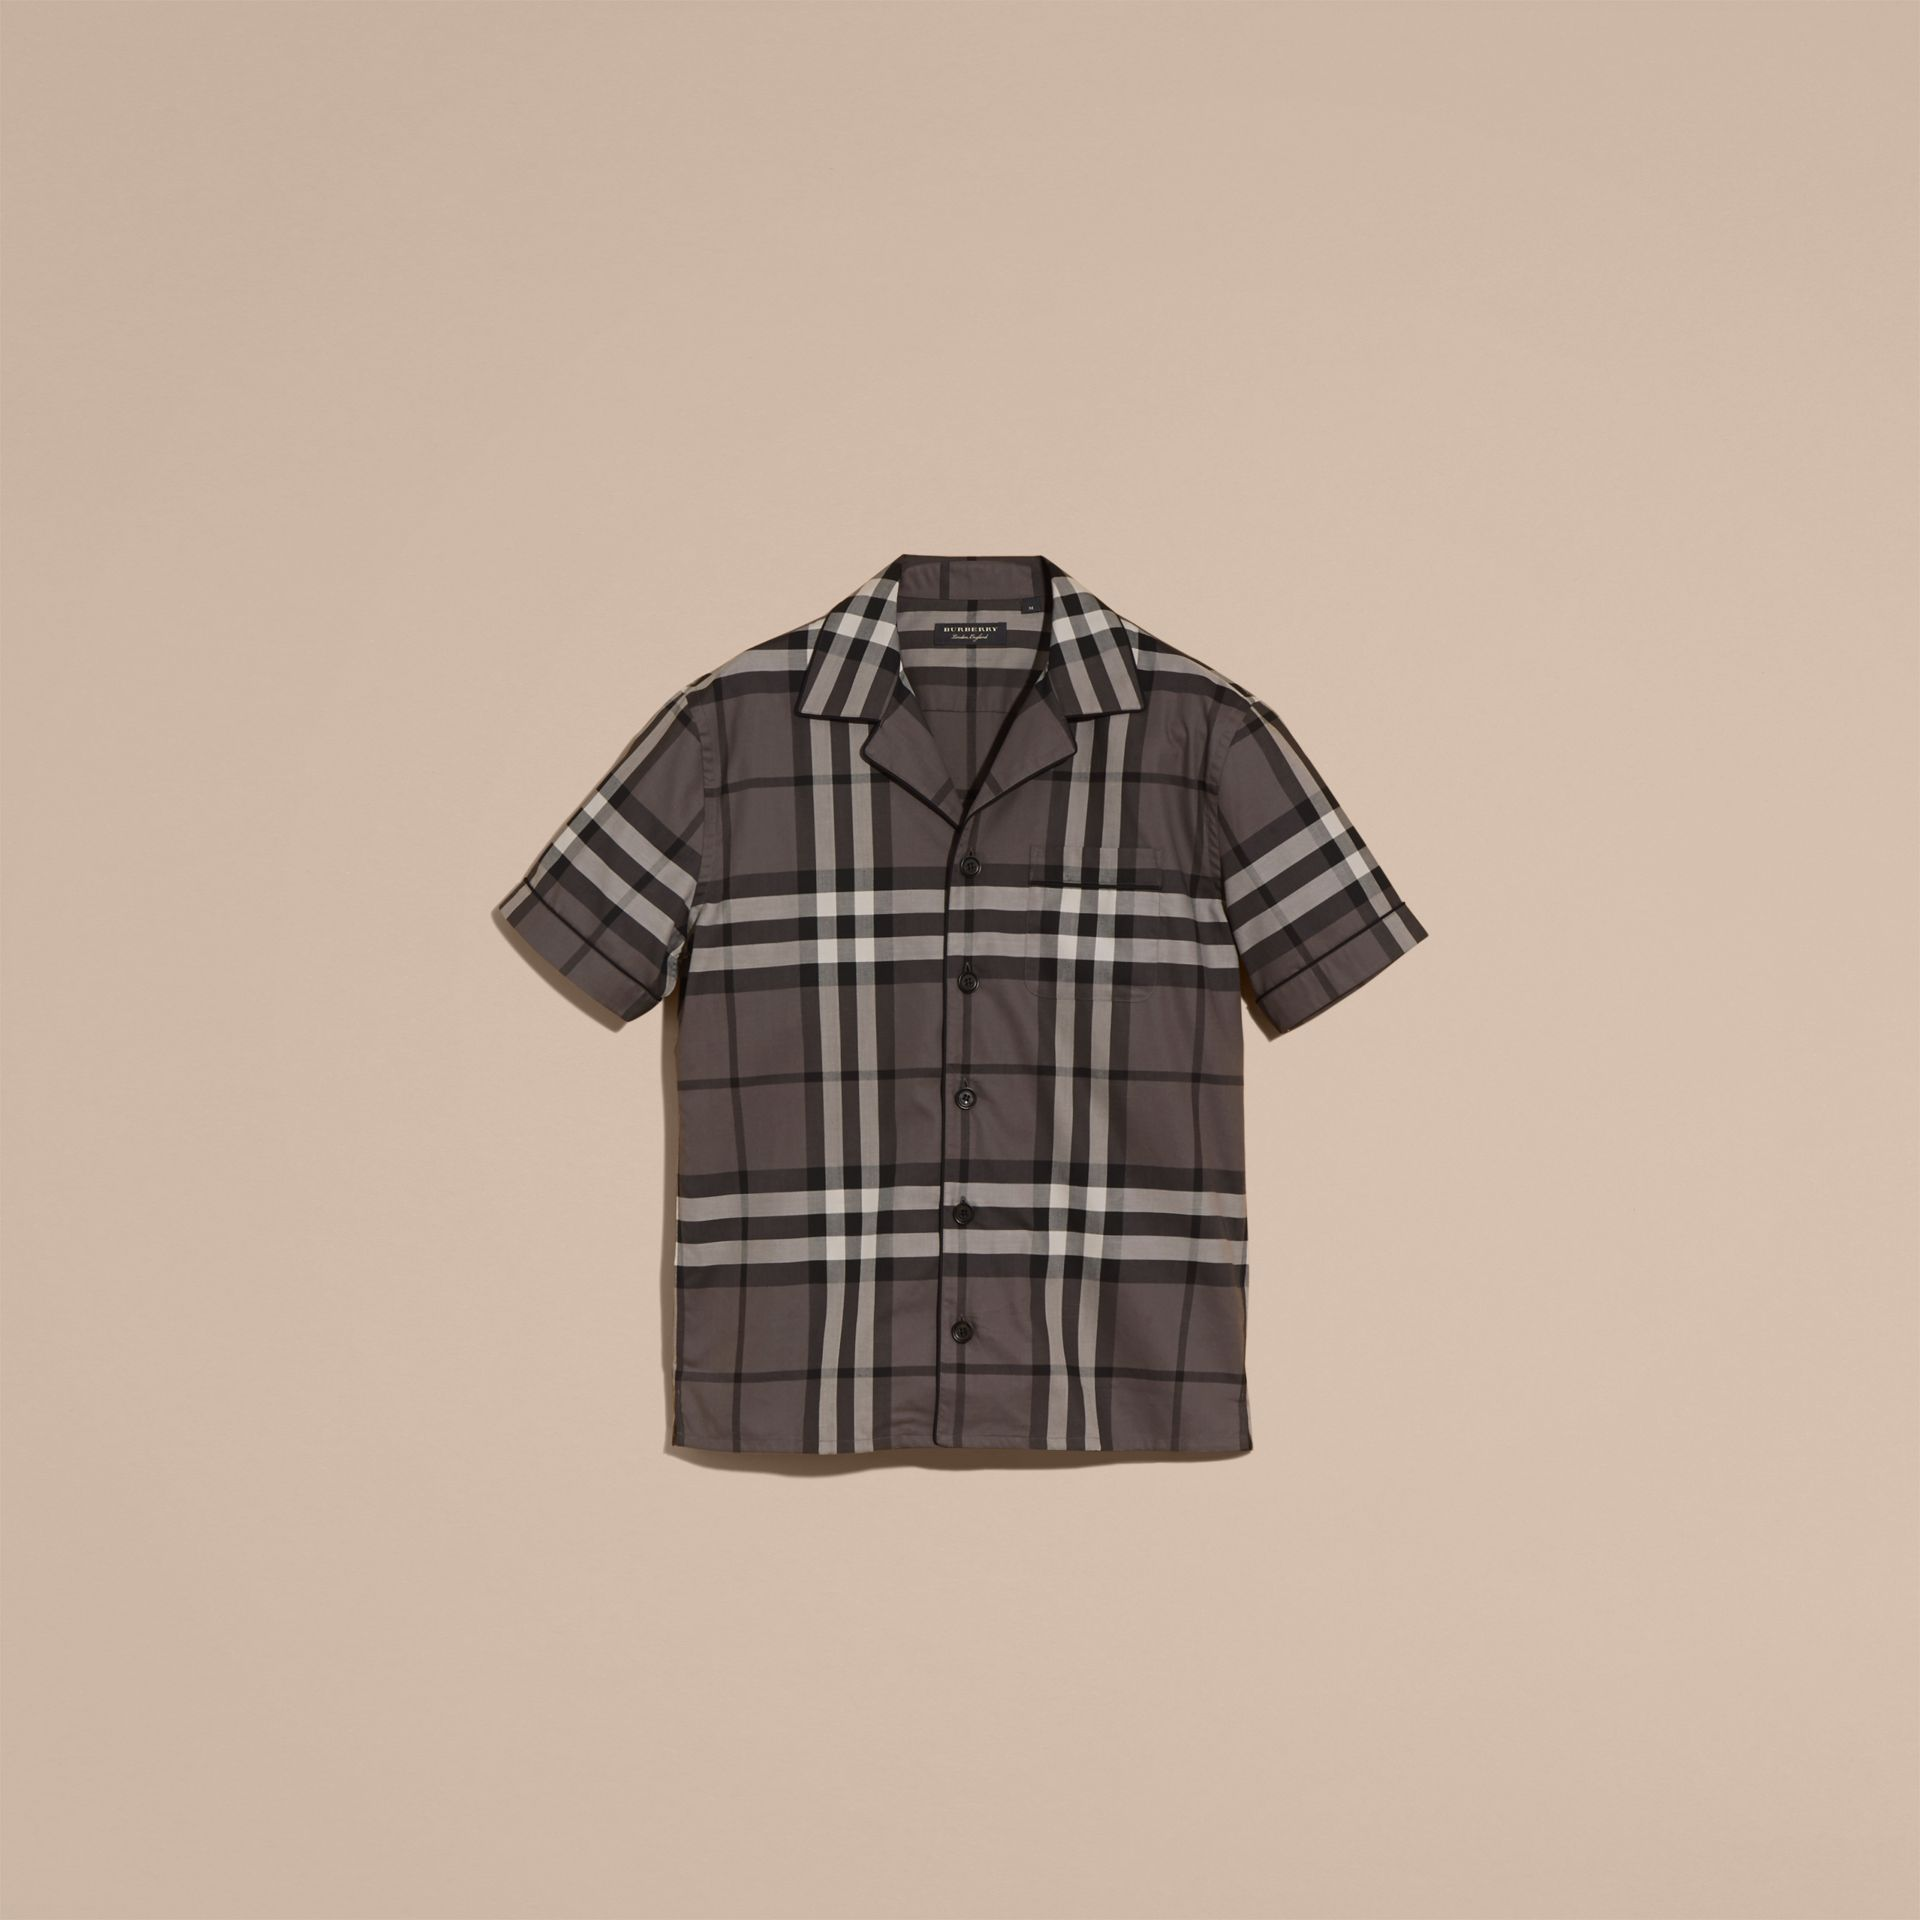 Charcoal Short-sleeved Check Cotton Pyjama-style Shirt Charcoal - gallery image 4